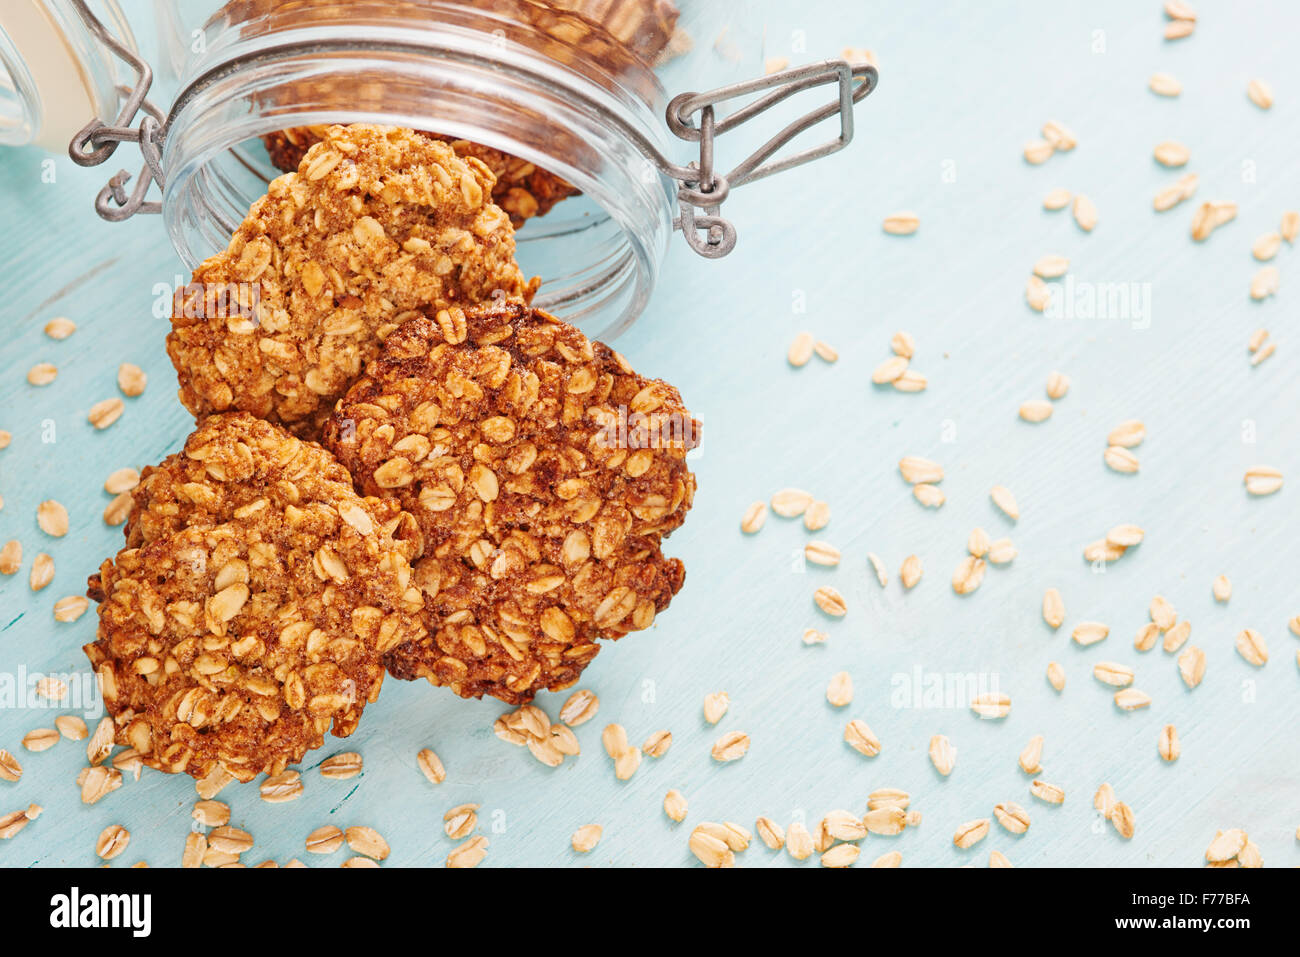 Homemade oatmeal banana cookies, surrounded by oatmeal, jar and blu wooden table - Stock Image